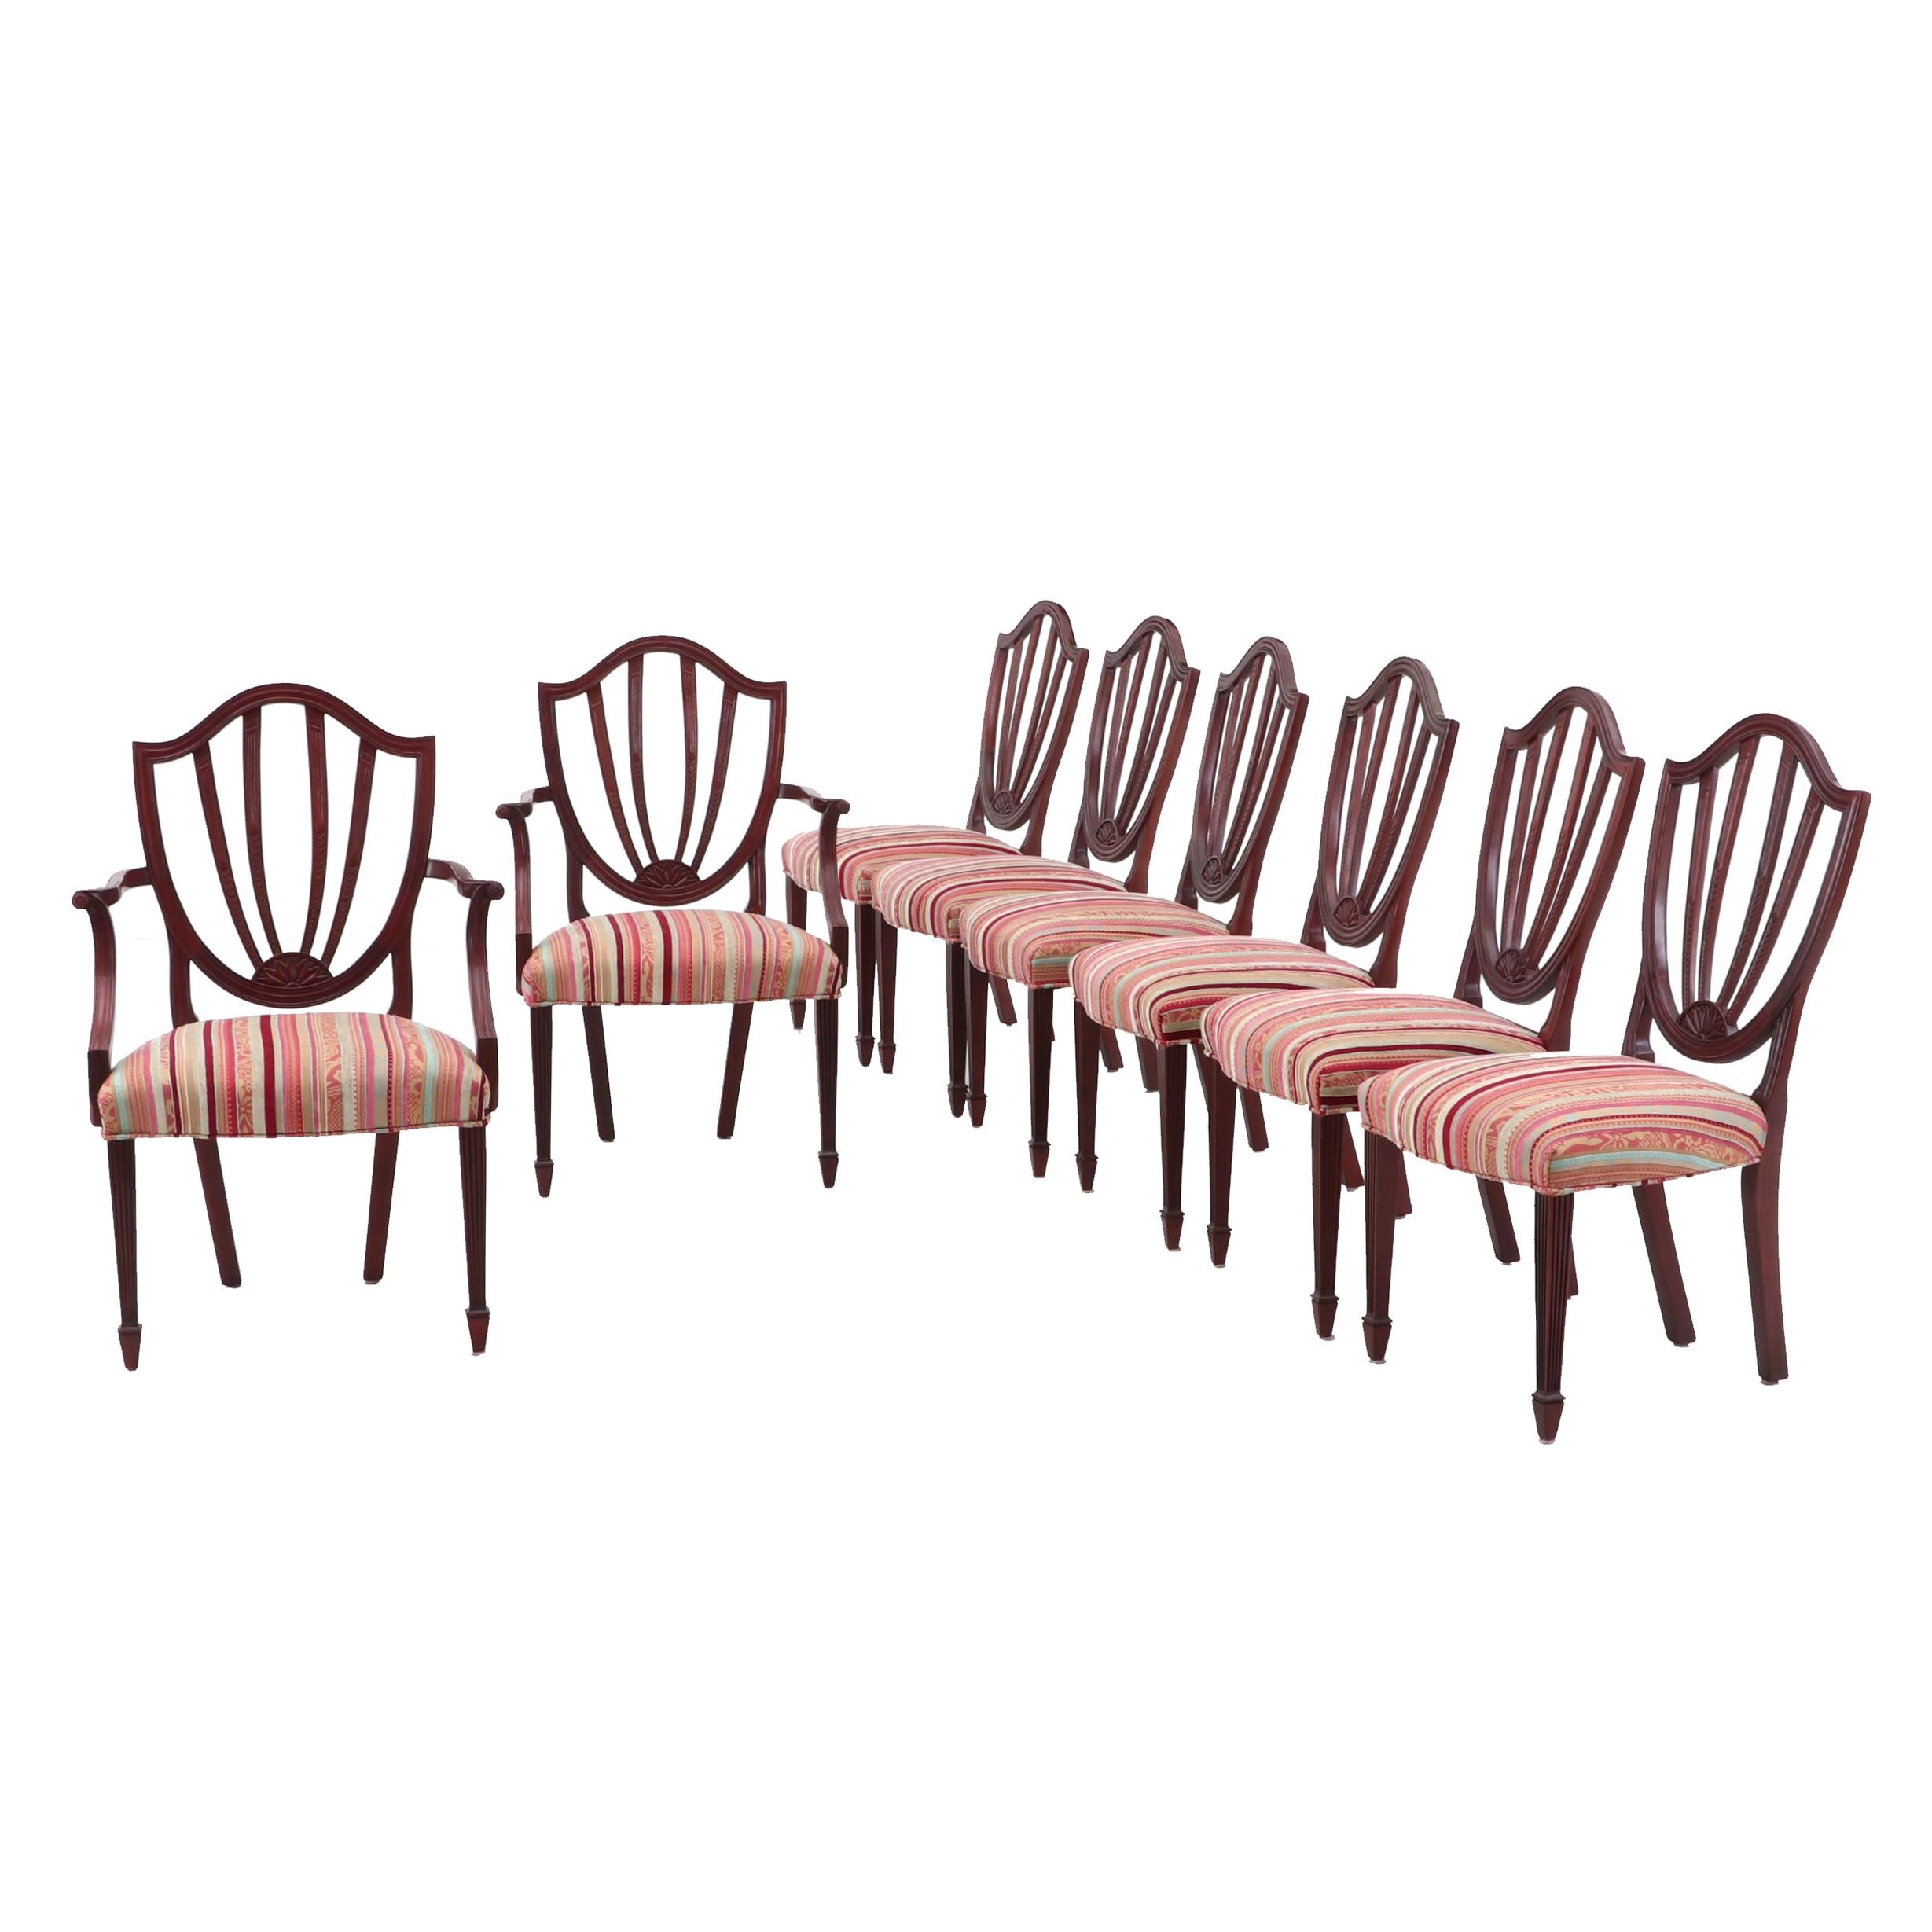 Hepplewhite Style Upholstered Dining Chairs in Mahogany by Baker Furniture